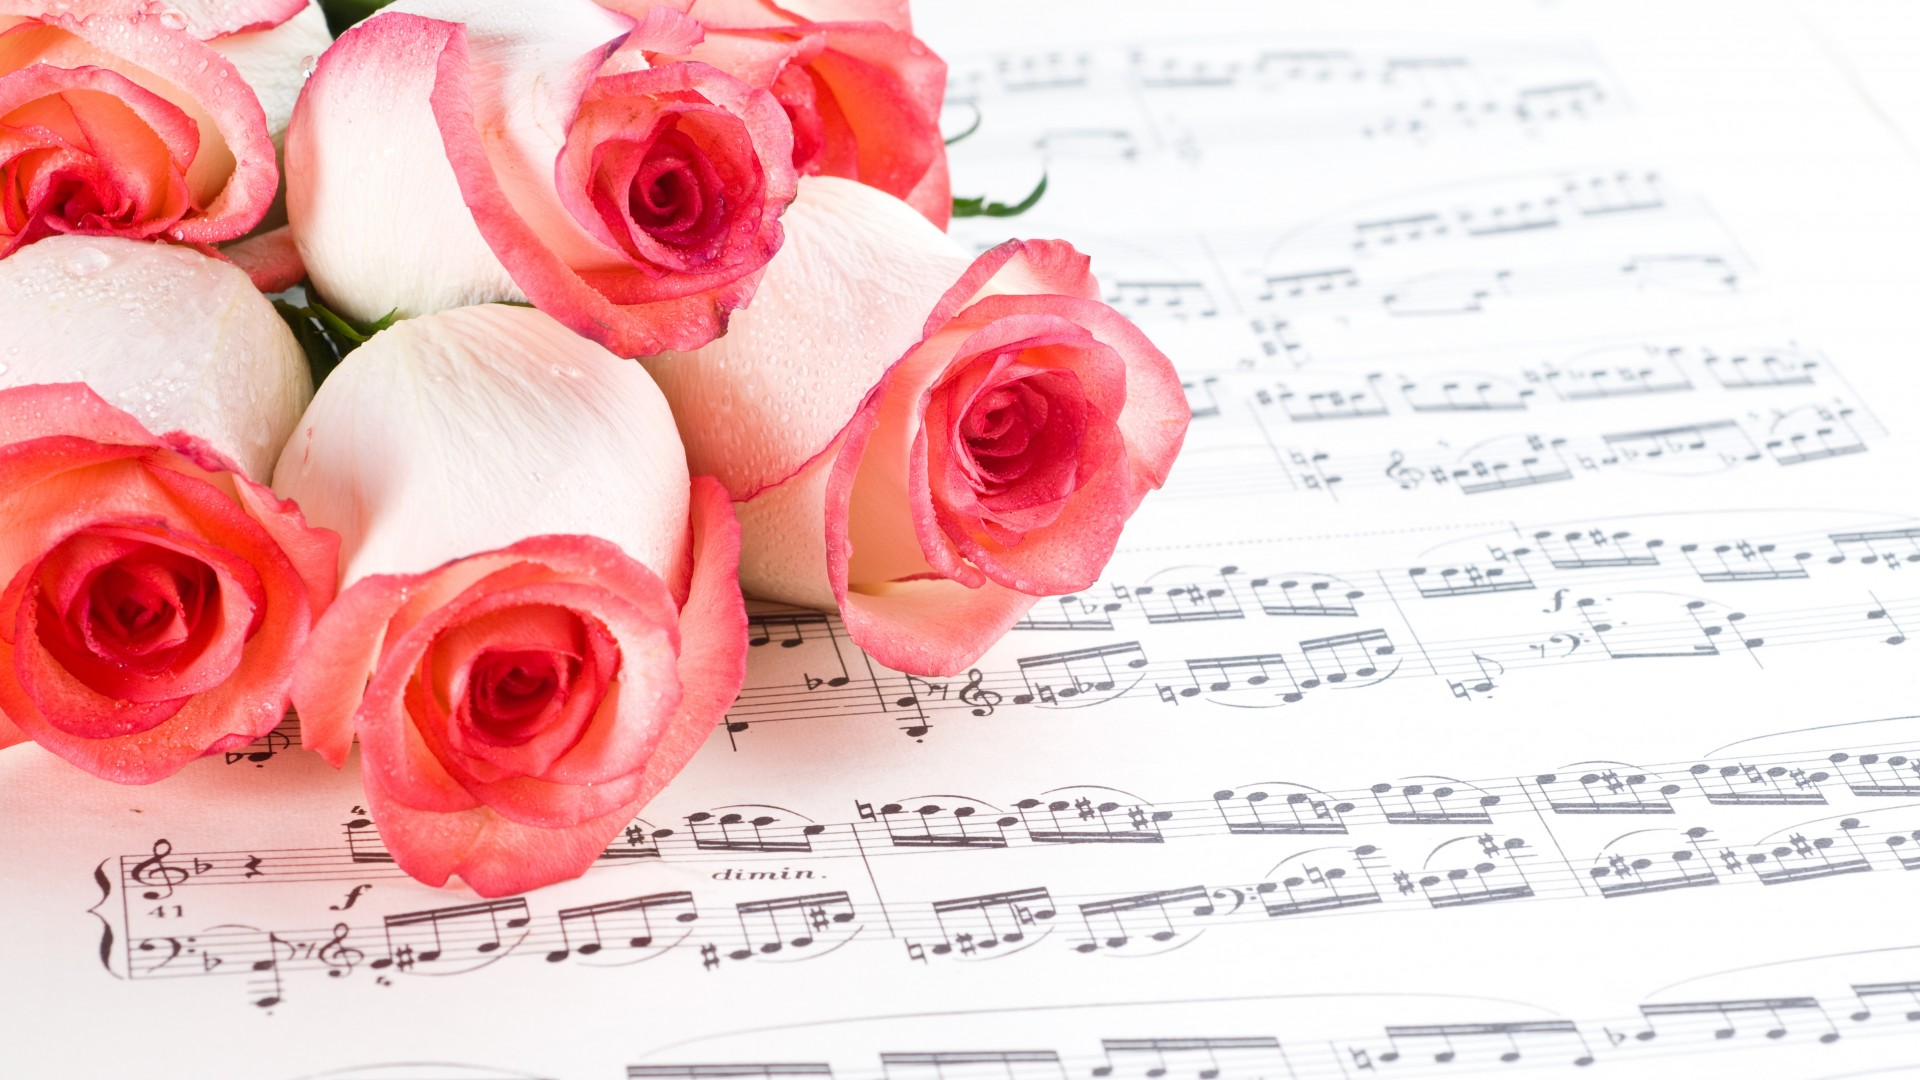 Music notes sheet paper flowers roses mood wallpaper for Paper roses sheet music free